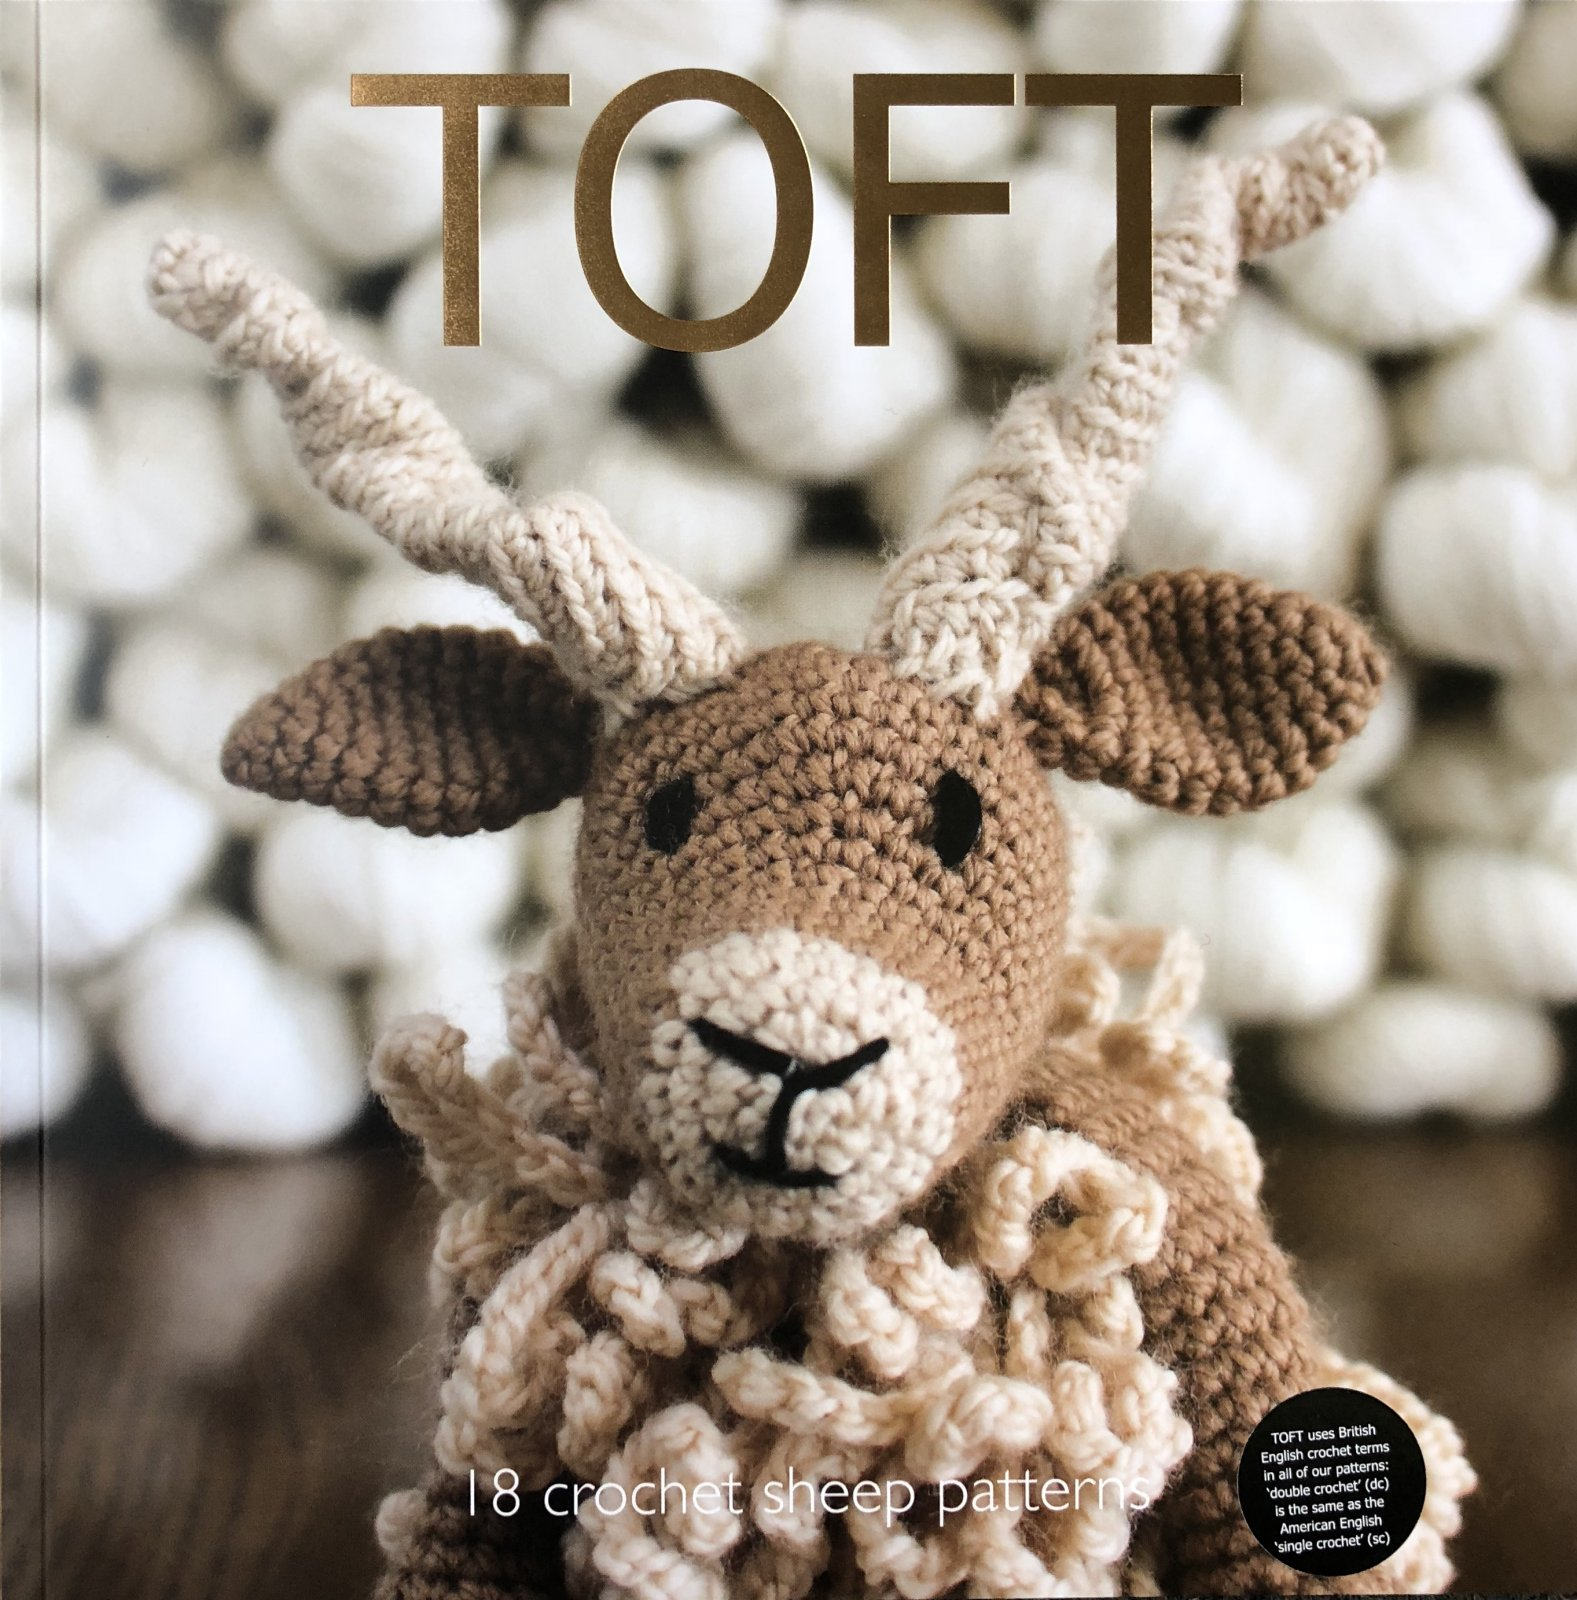 TOFT Quarterly: 18 crochet sheep patterns